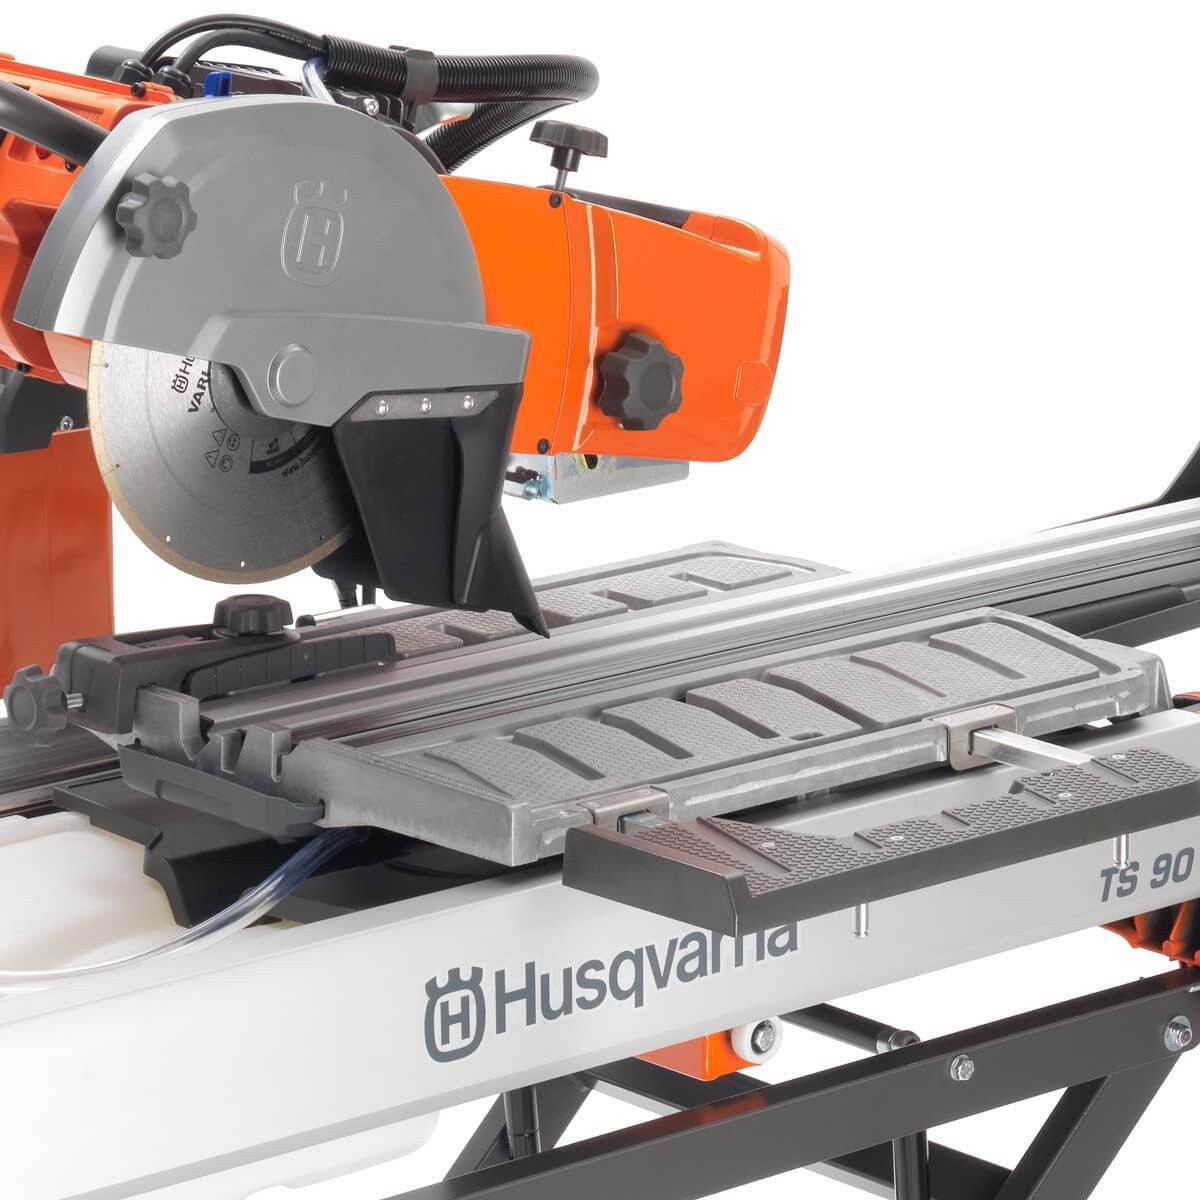 Husqvarna TS 90 Wet Tile Saw cutting table